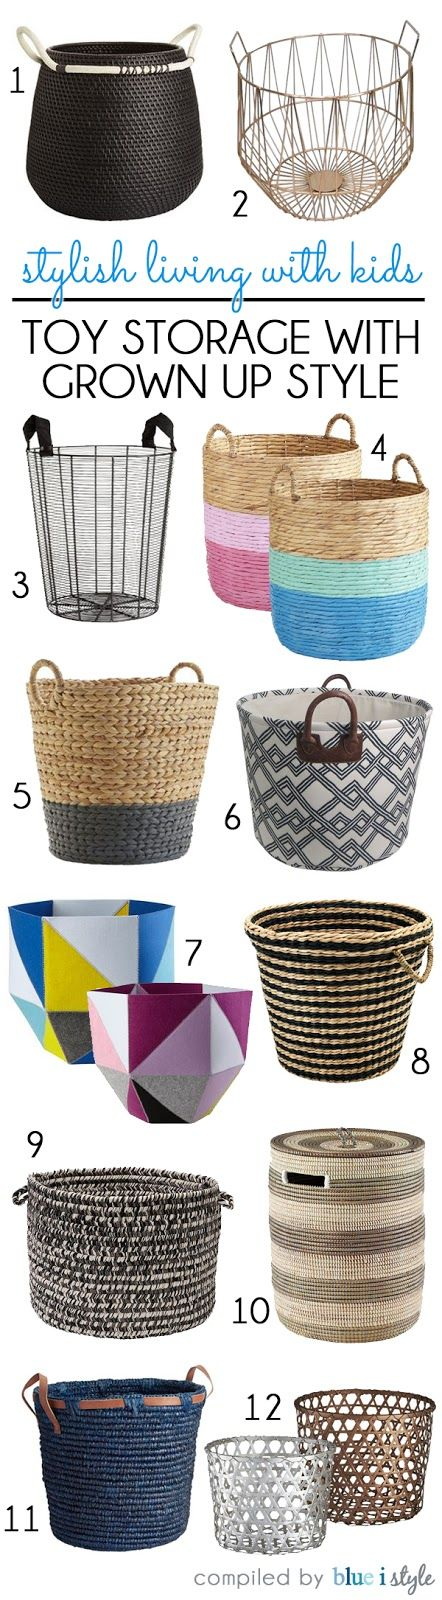 TOY ORGANIZING TIP: Use stylish baskets to hide kids' toys in plain sight! If the baskets match the style of the room, they seem to fit right in despite the toys spilling out of the top.